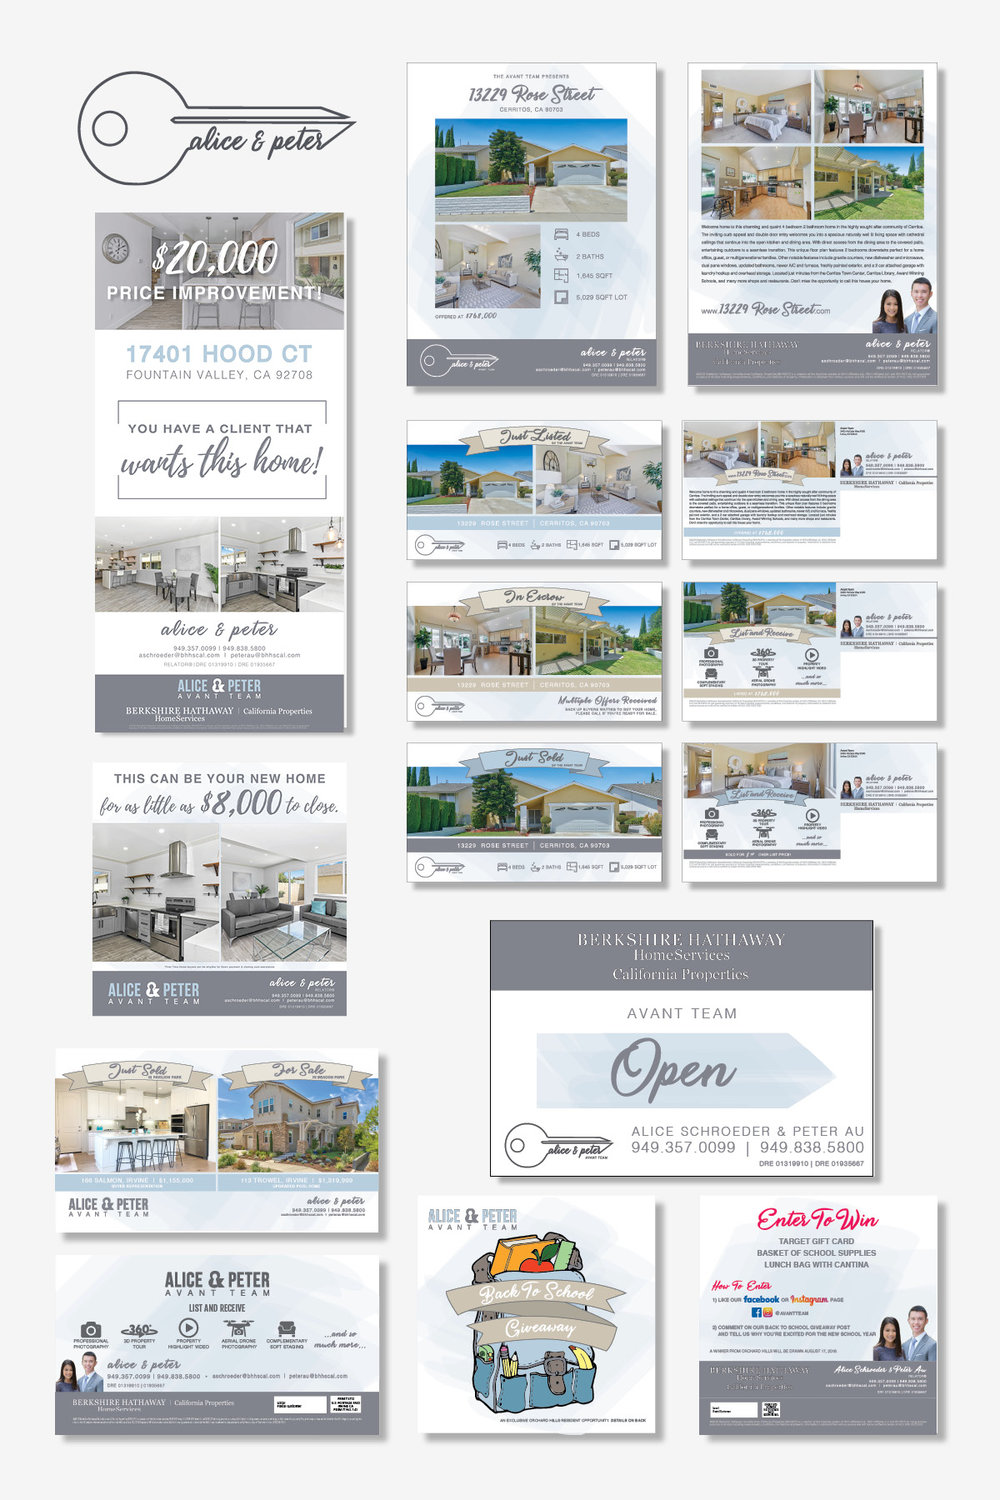 AVANT TEAM   This brand was developed for the Avant Team, a group of REALTORS® in Irvine, California. Their main focus is reaching potential clients through direct mail, and Brand Hatch has helped them accomplish this.